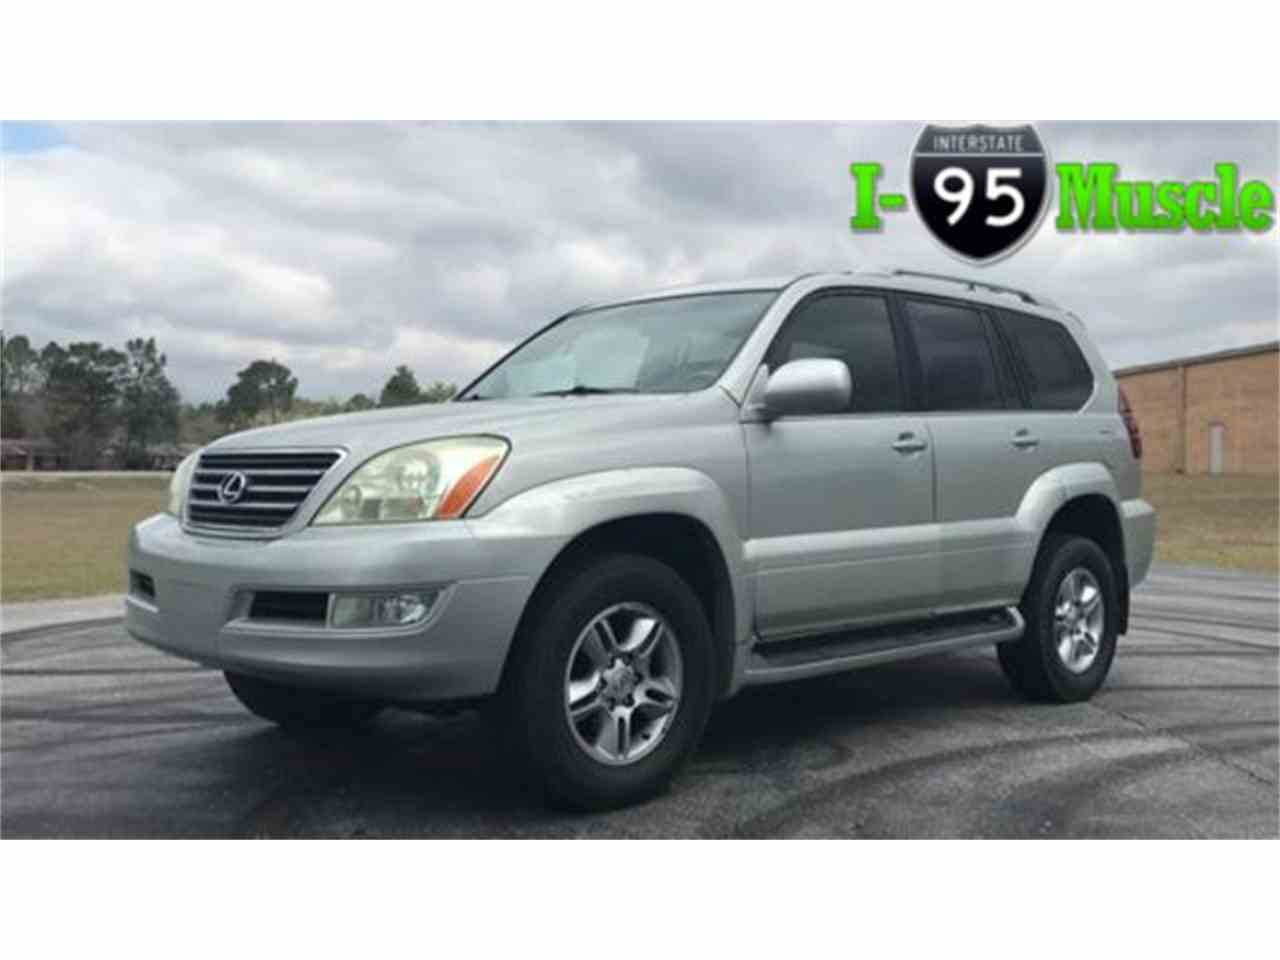 https://ccmarketplace.azureedge.net/cc-temp/listing/107/2088/11215703-2003-lexus-gx470-std-c.jpg